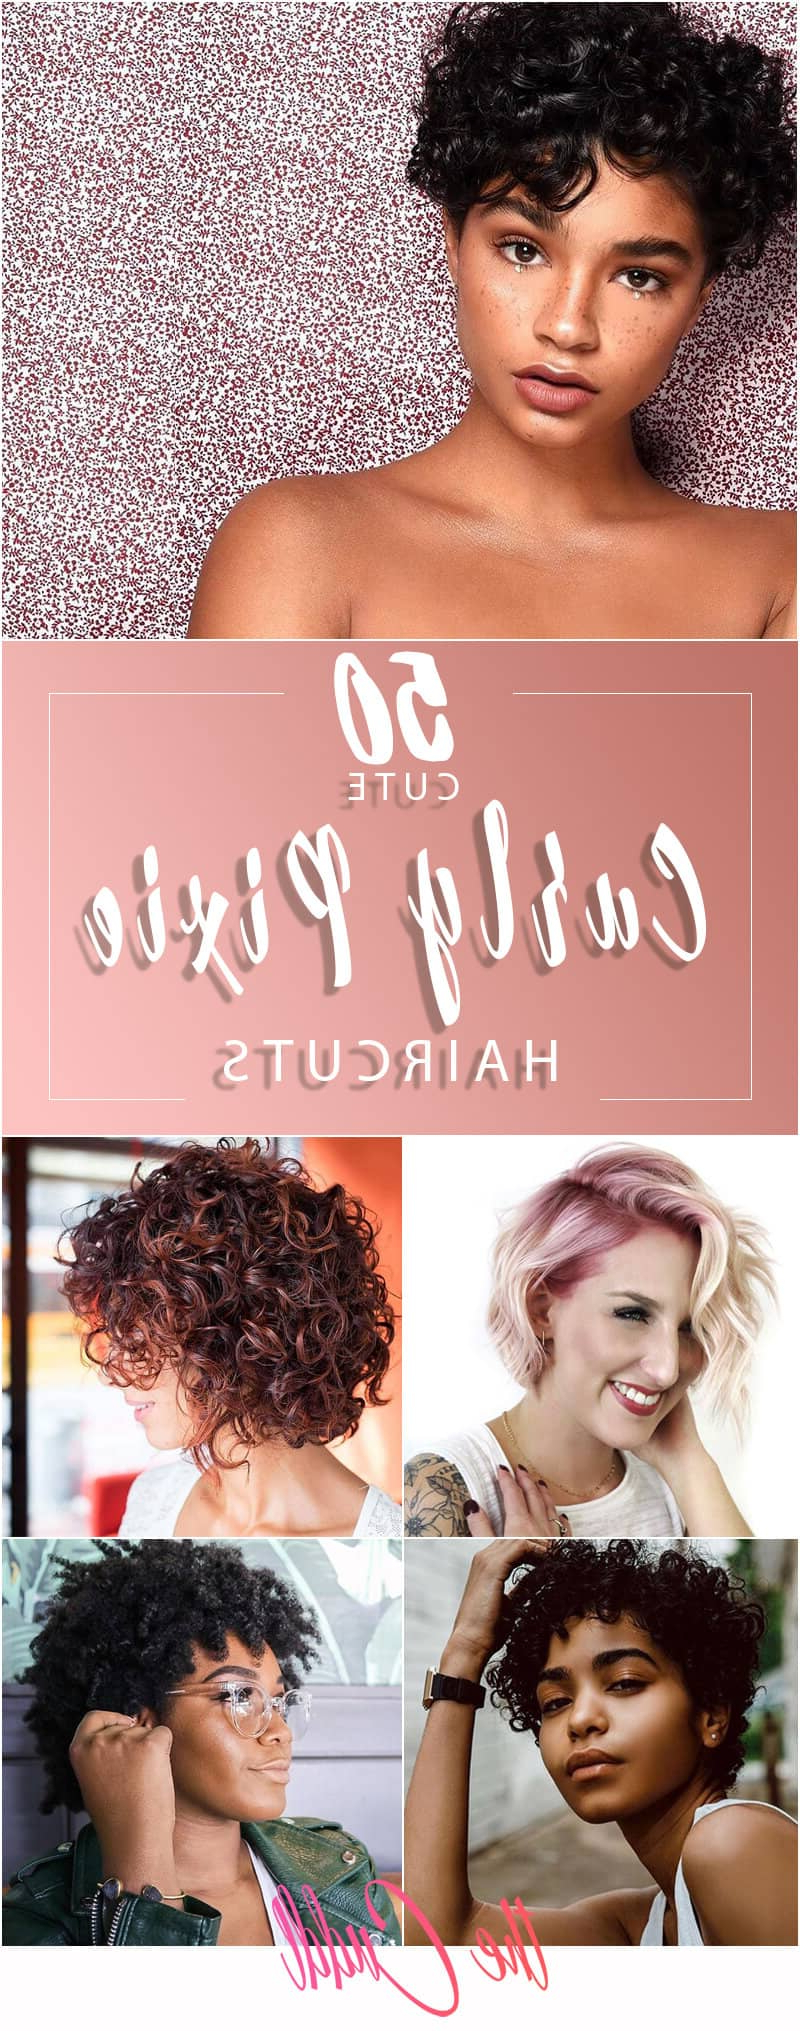 50 Bold Curly Pixie Cut Ideas To Transform Your Style In 2019 Pertaining To Cute Curly Pixie Hairstyles (View 7 of 20)